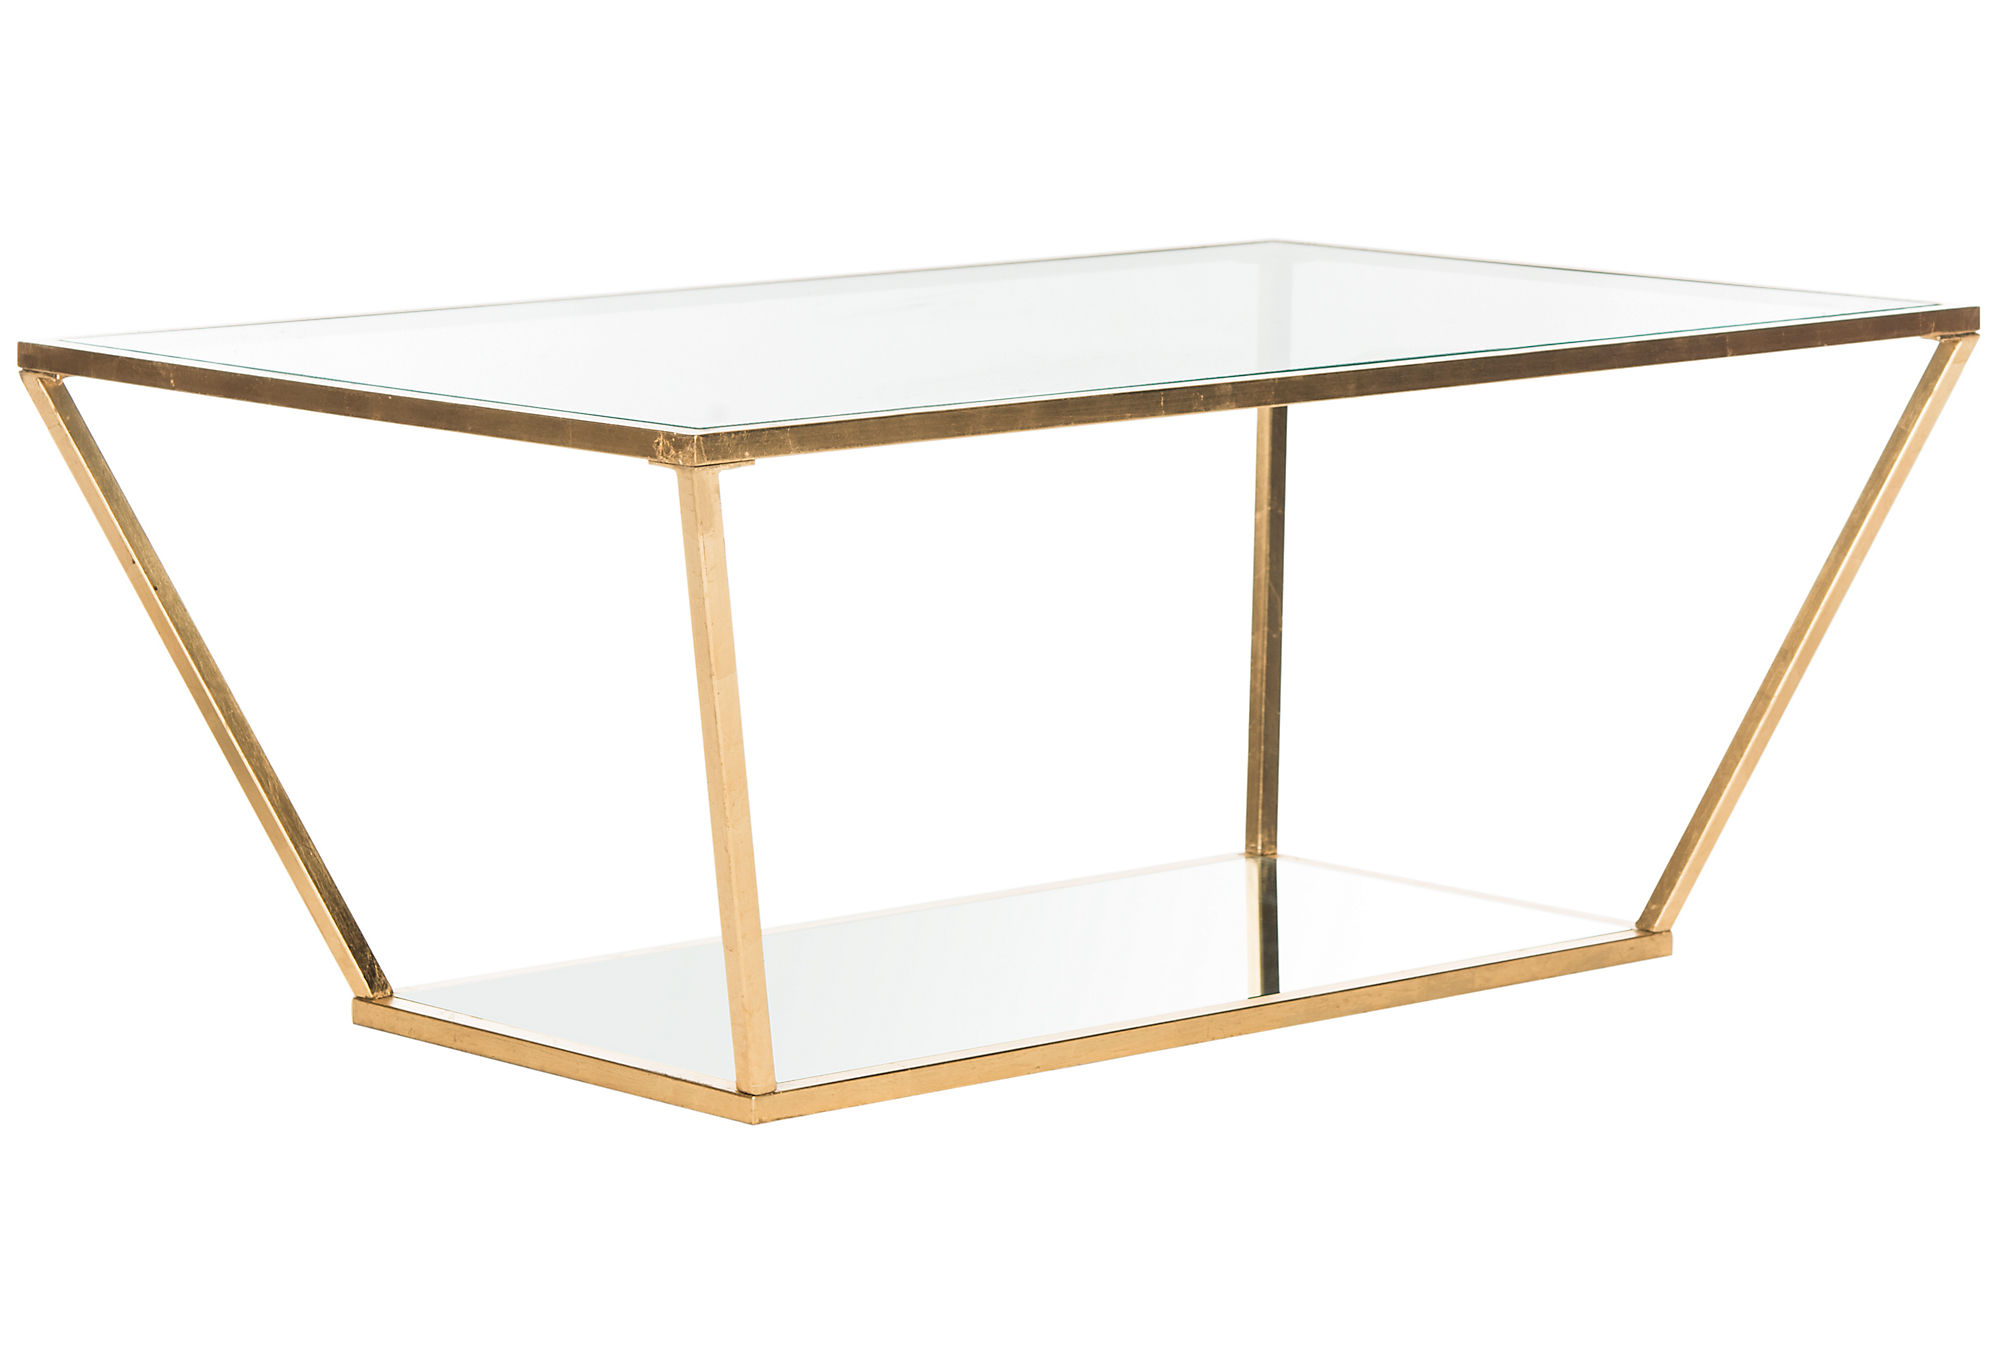 Clairemont Oval Coffee Table by Crate and Barrel